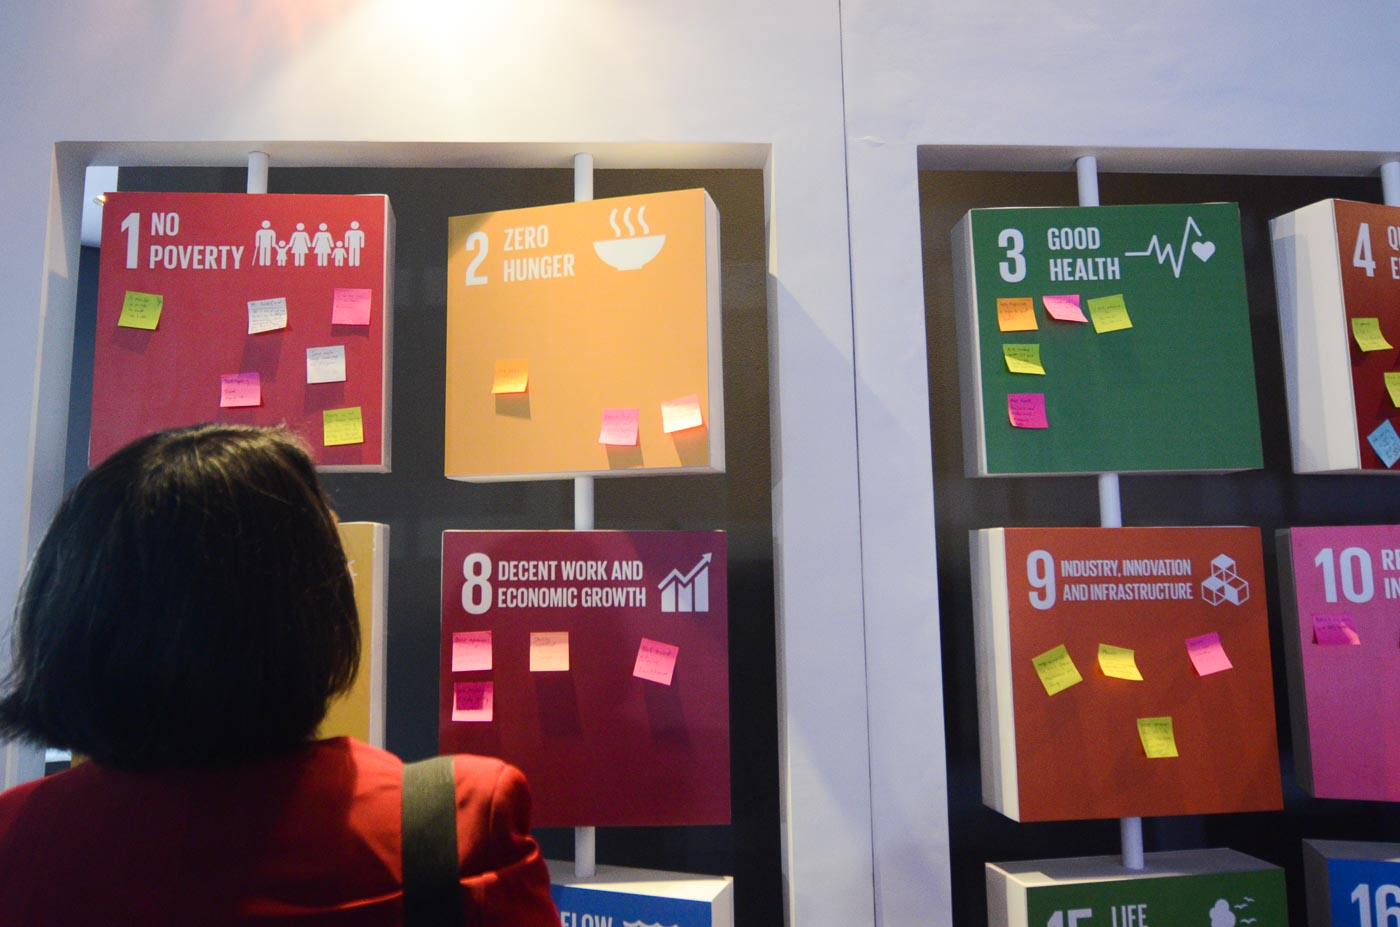 Participants of the Social Good Summit are asked to put their concrete contributions to the UN's global goals.